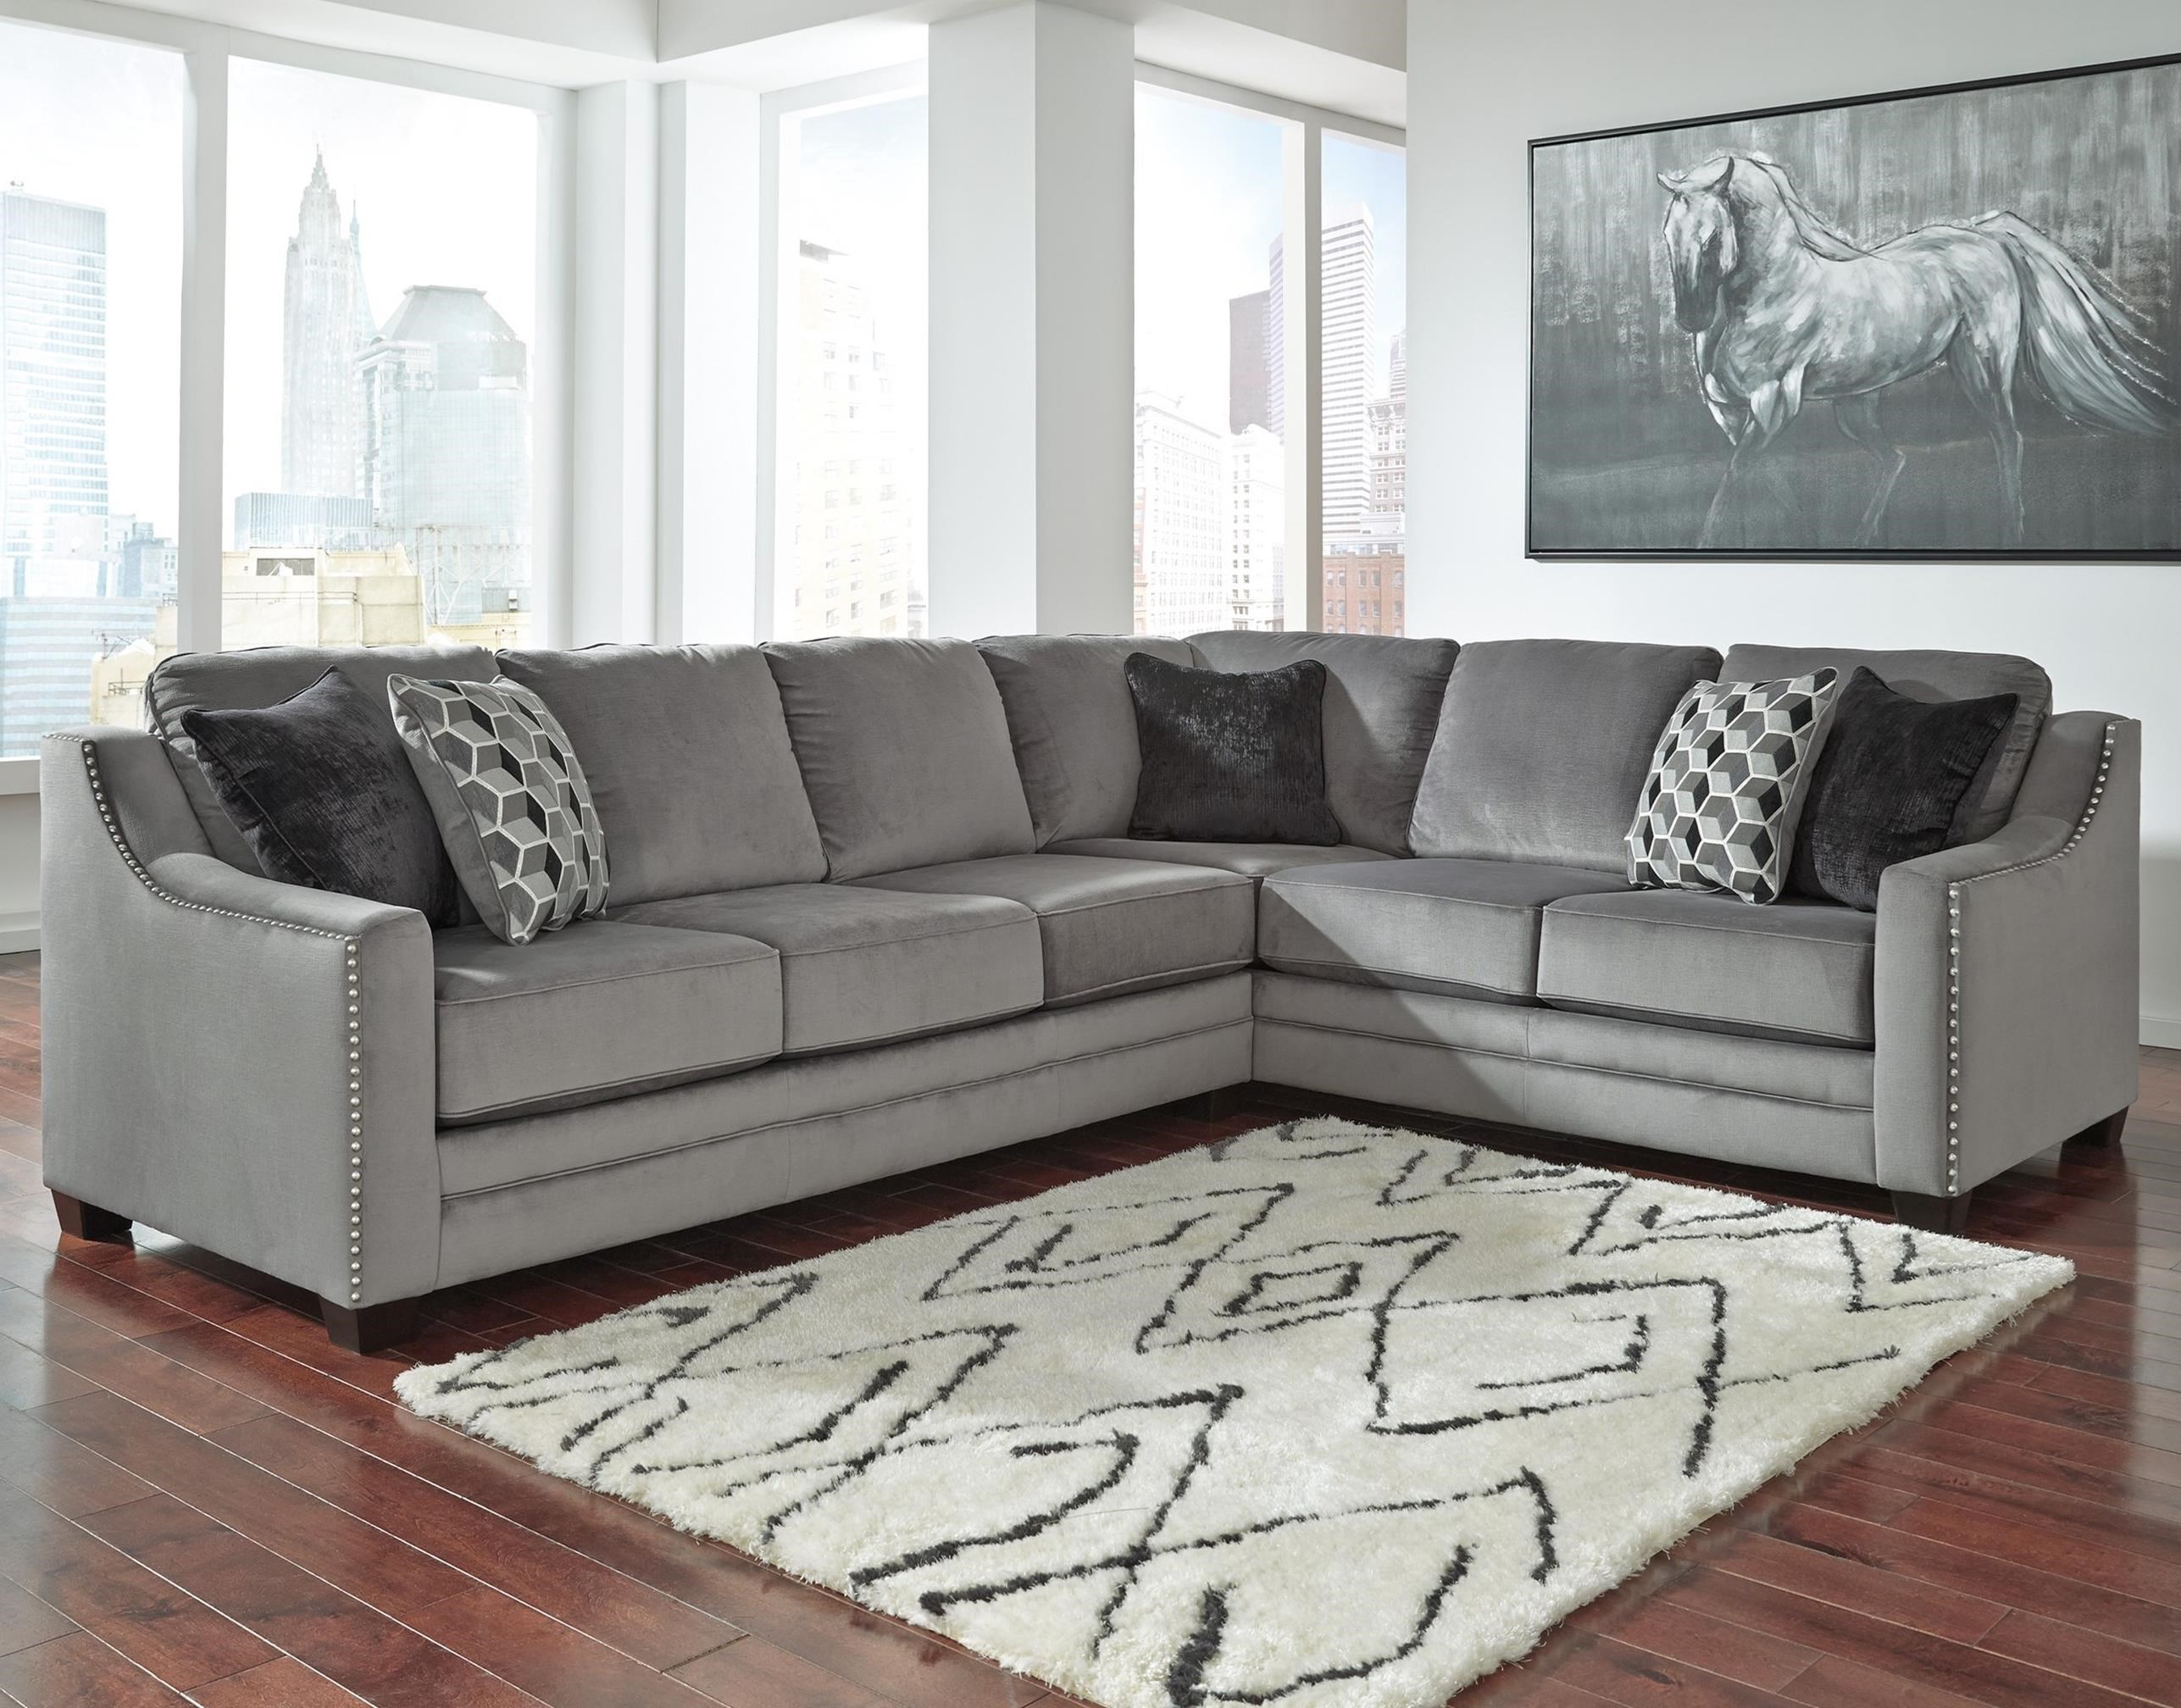 Benchcraft Bicknell 2 Piece Sectional With Left Sofa Item Number 8620466 49